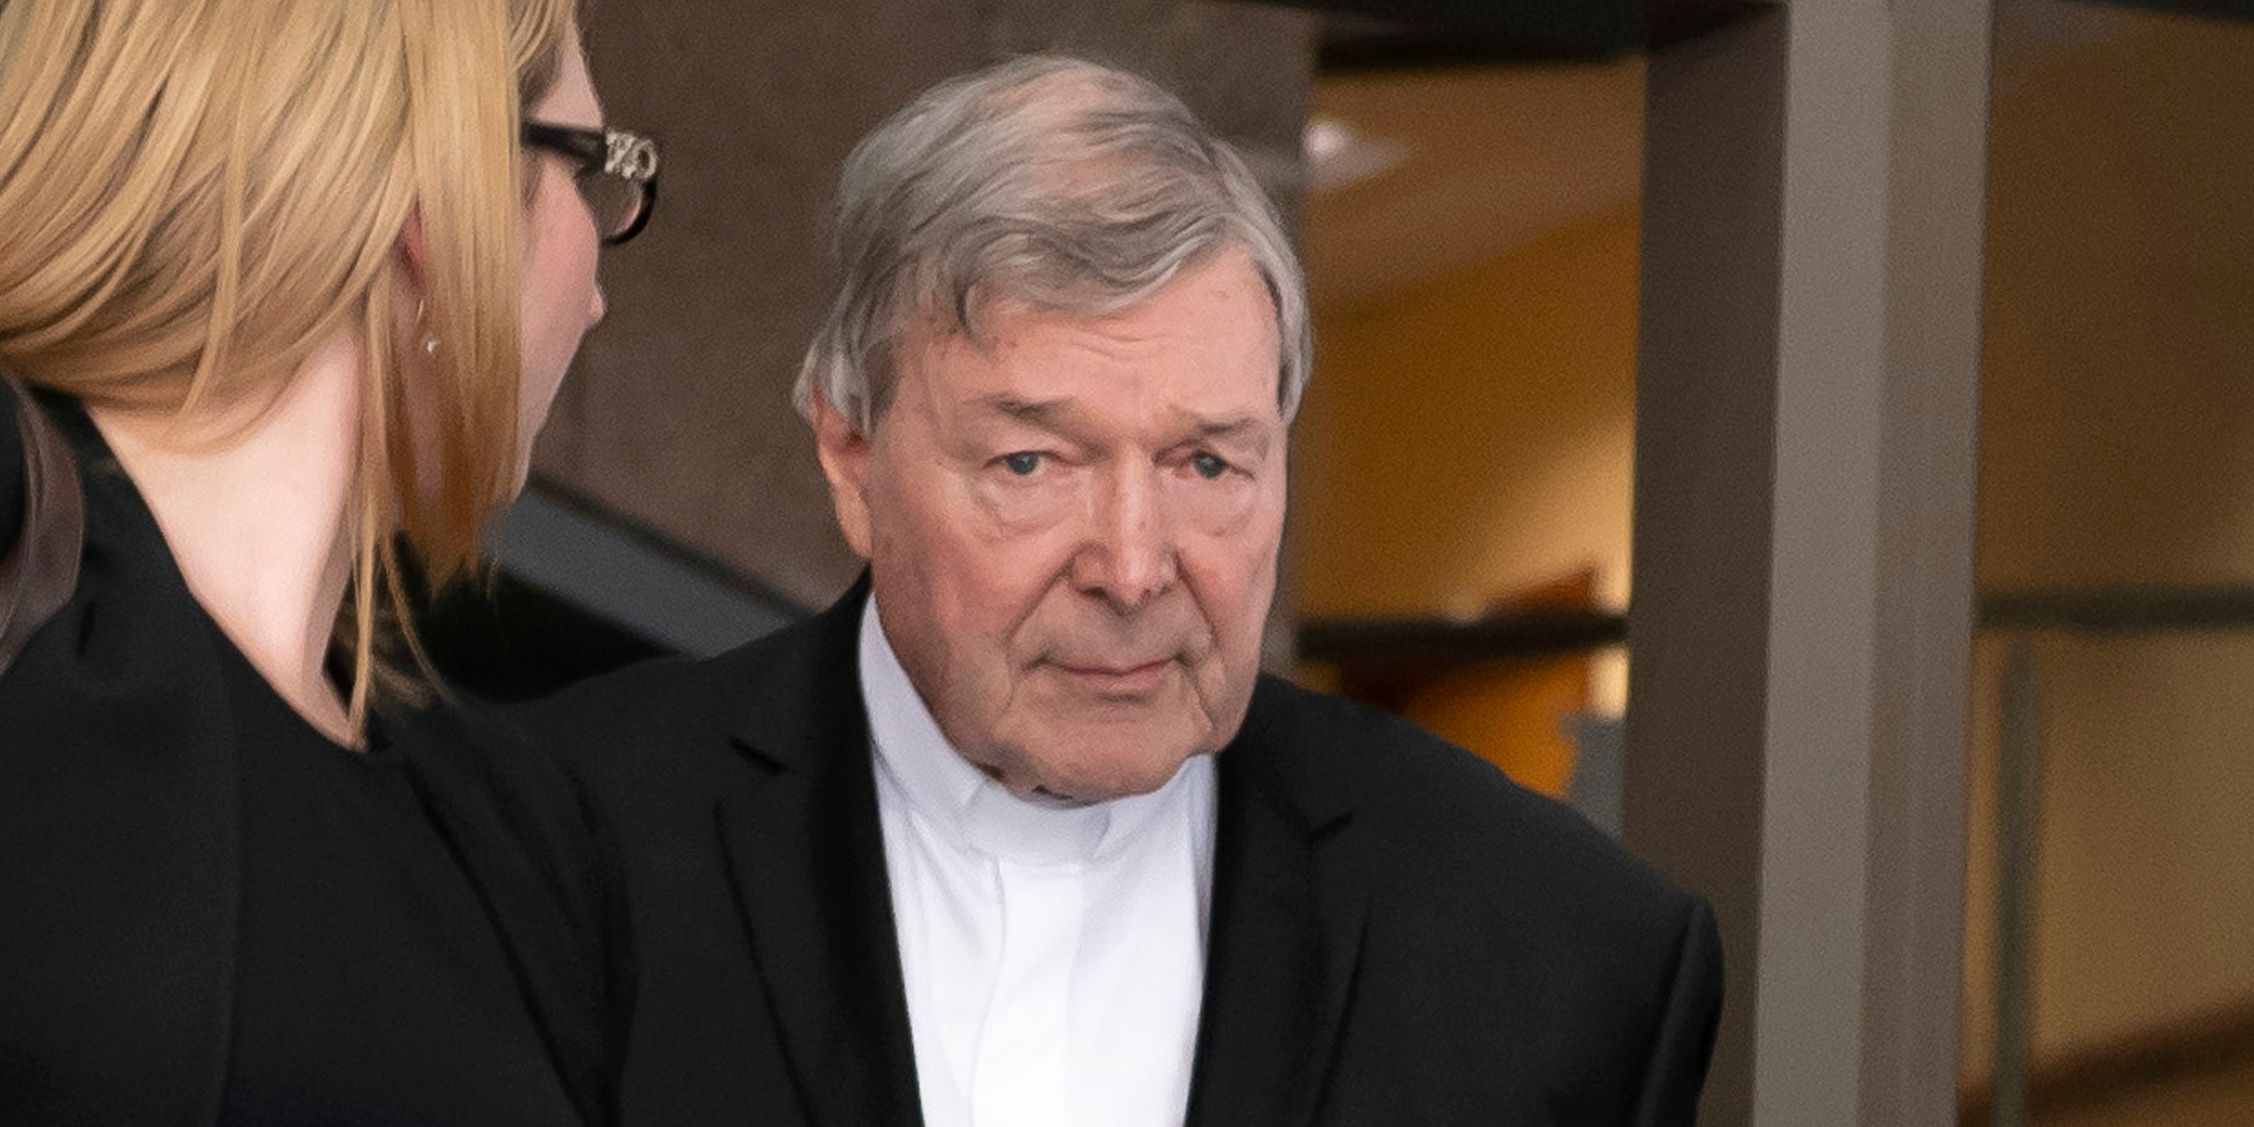 Cardinal Pell welcomes court's dismissal of abuse conviction